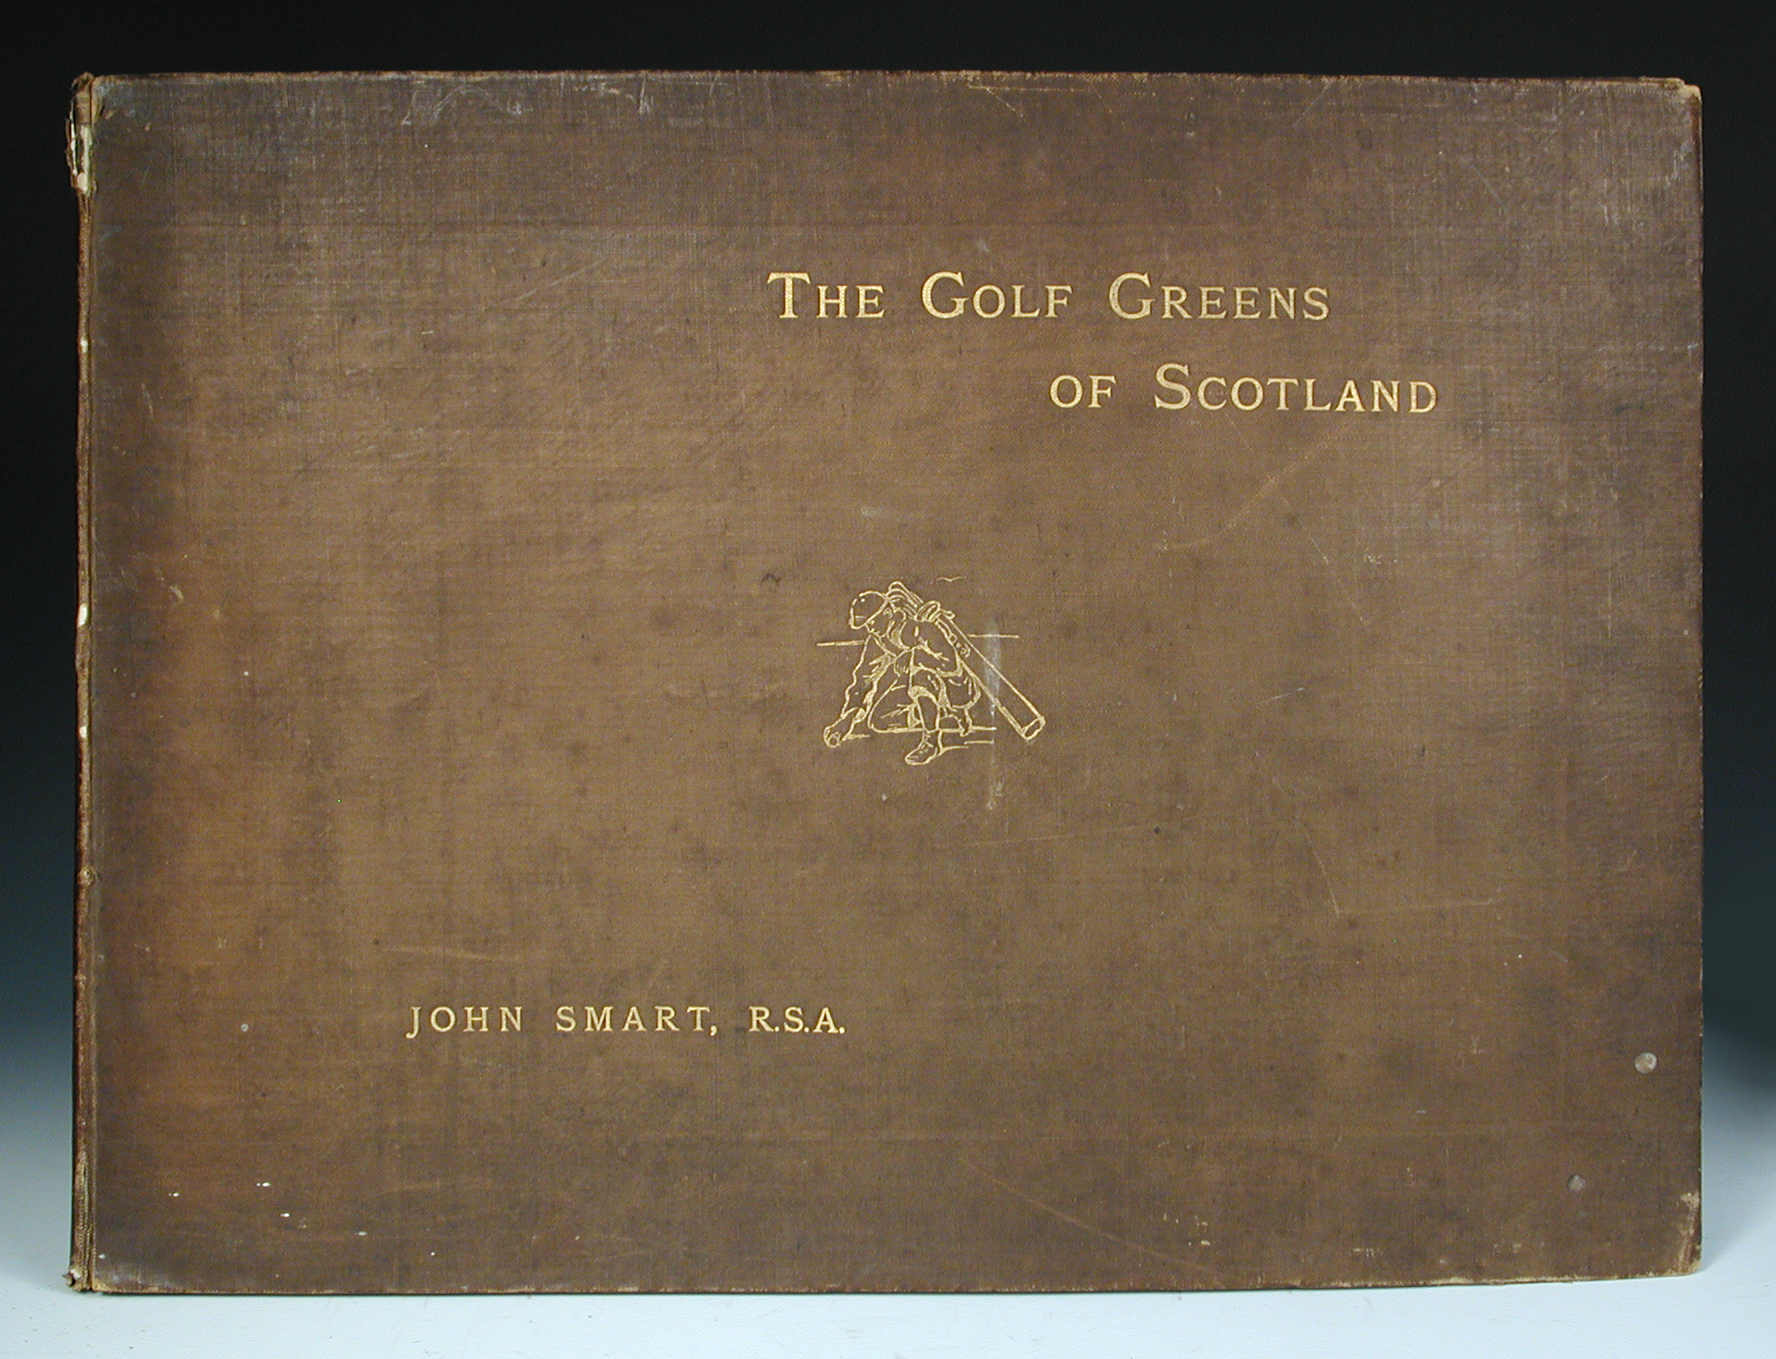 The Golf Greens of Scotland